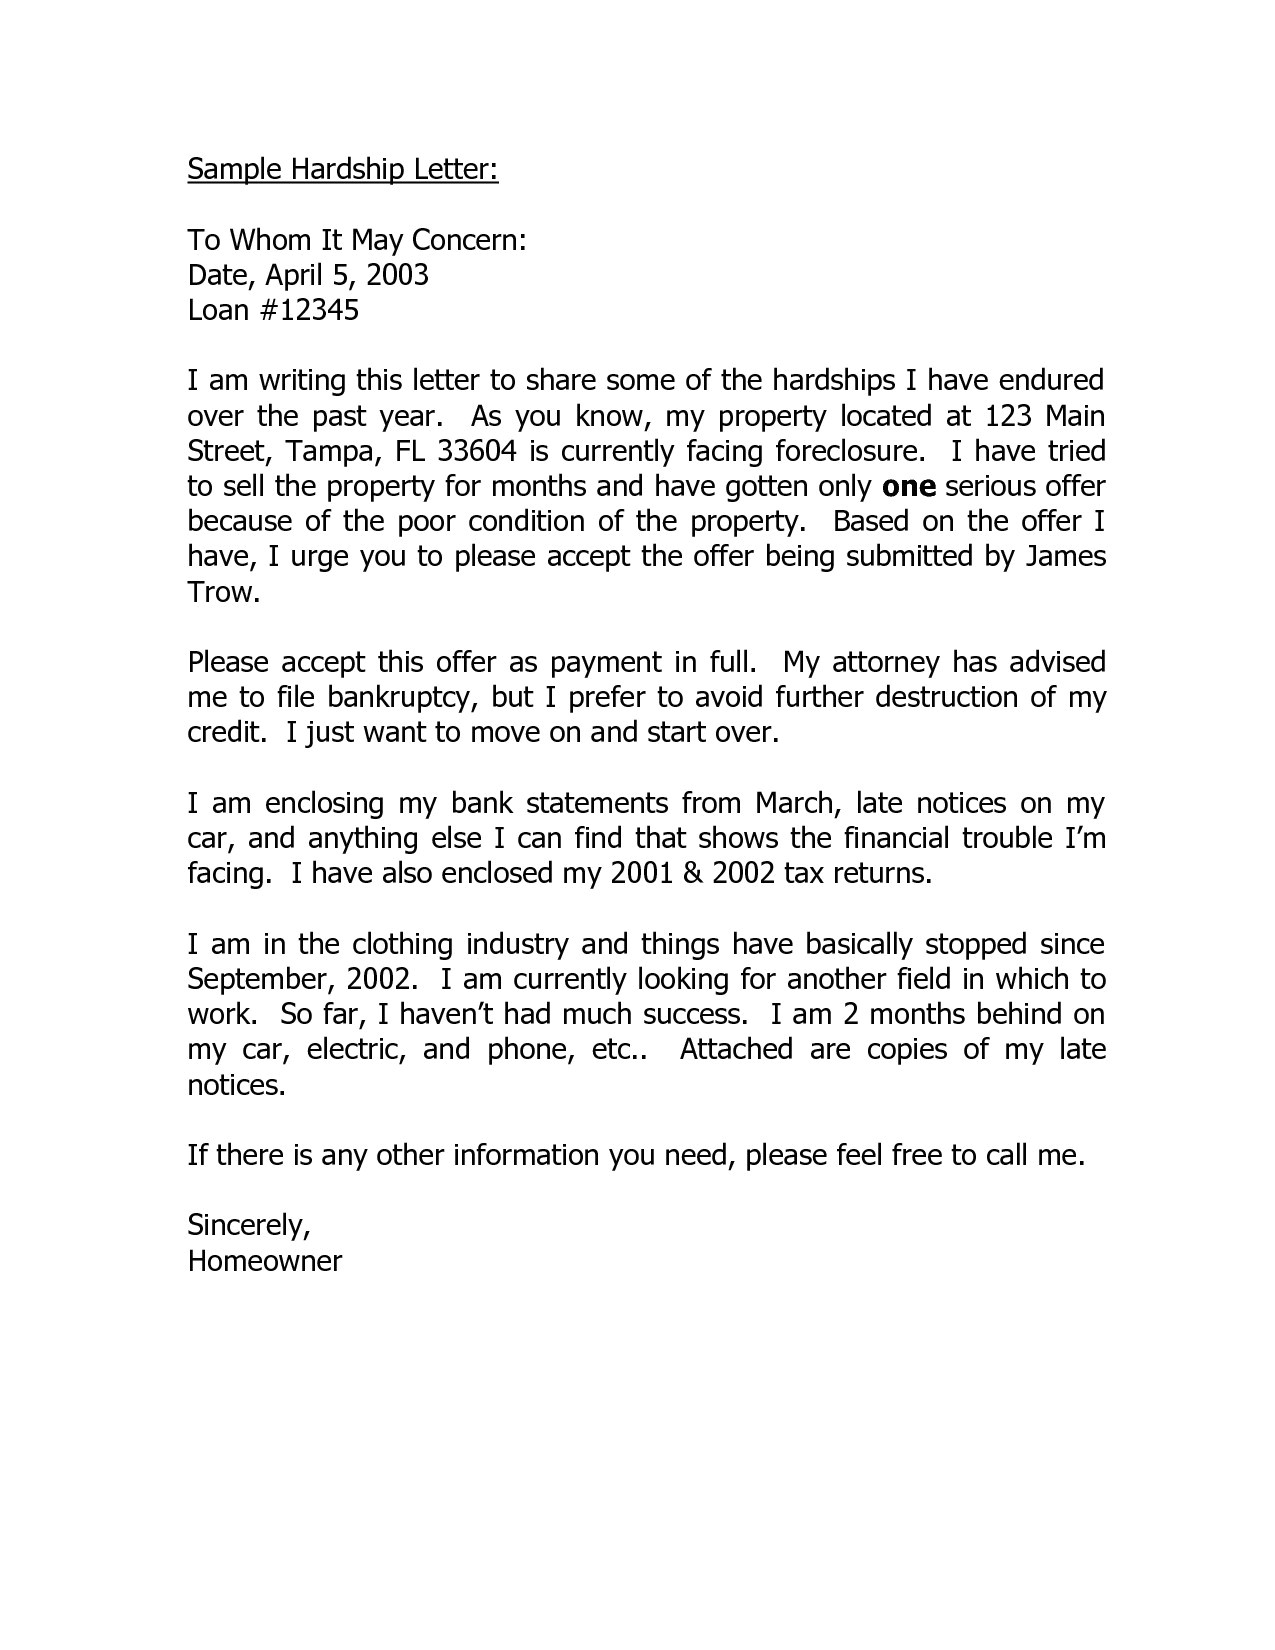 how to write to whom it may concern letter format writing to whom it may concern cover letters image collections